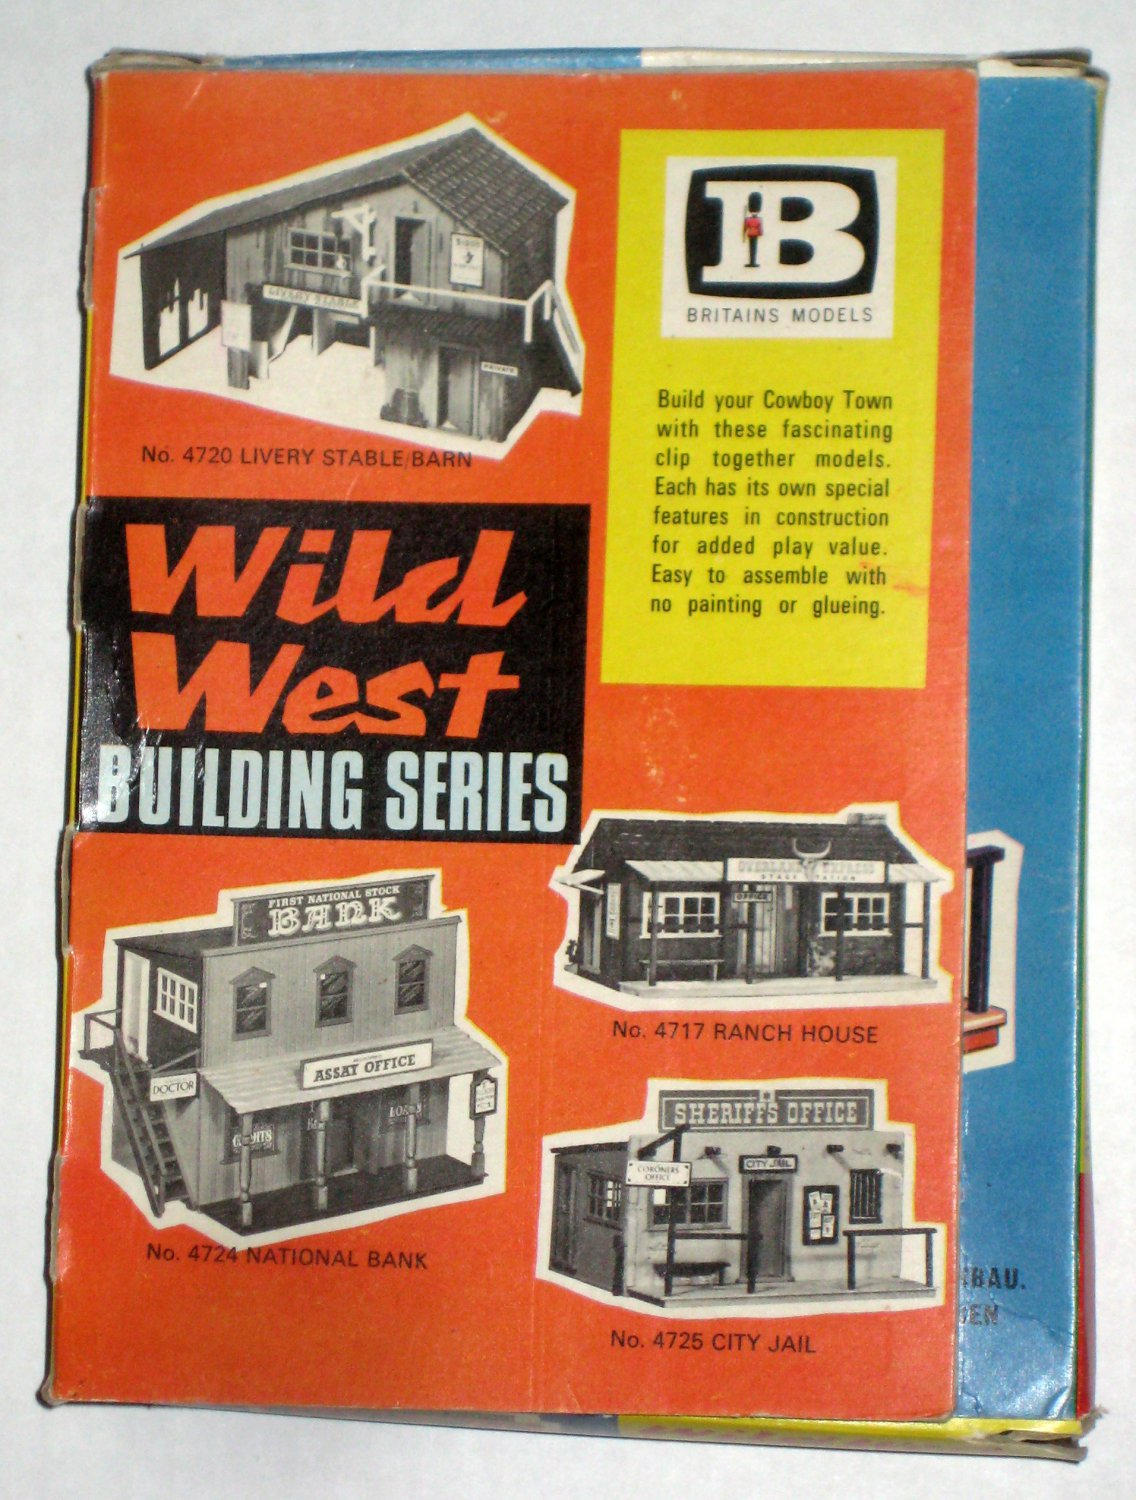 SOLD Britains Models Wild West Building Series City Jail 4725 Make Up Model Box Sheriff's Office